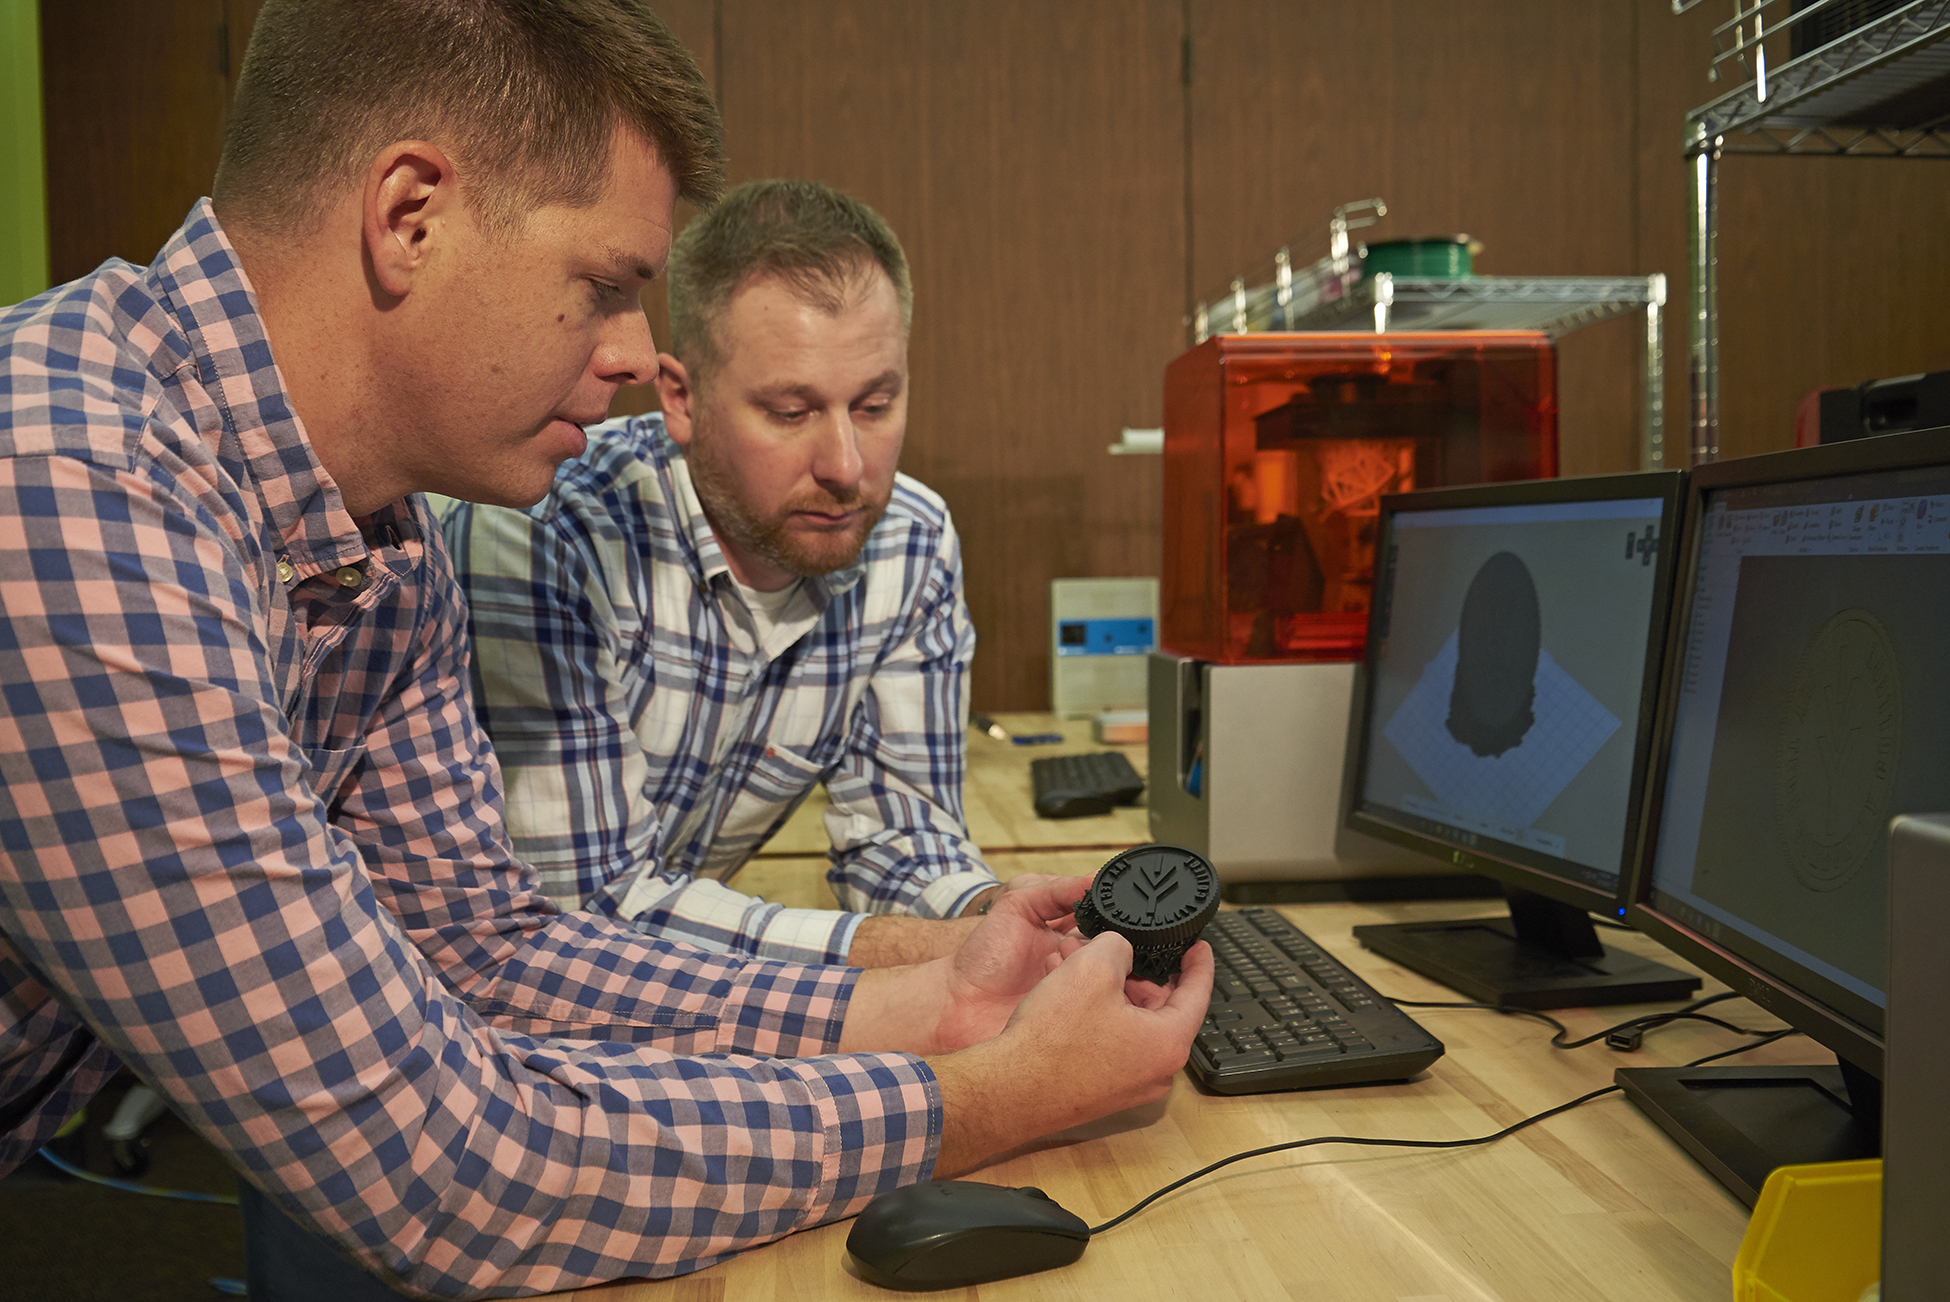 Two professors look at a 3D printed part in front of the Form 2 3D printer.